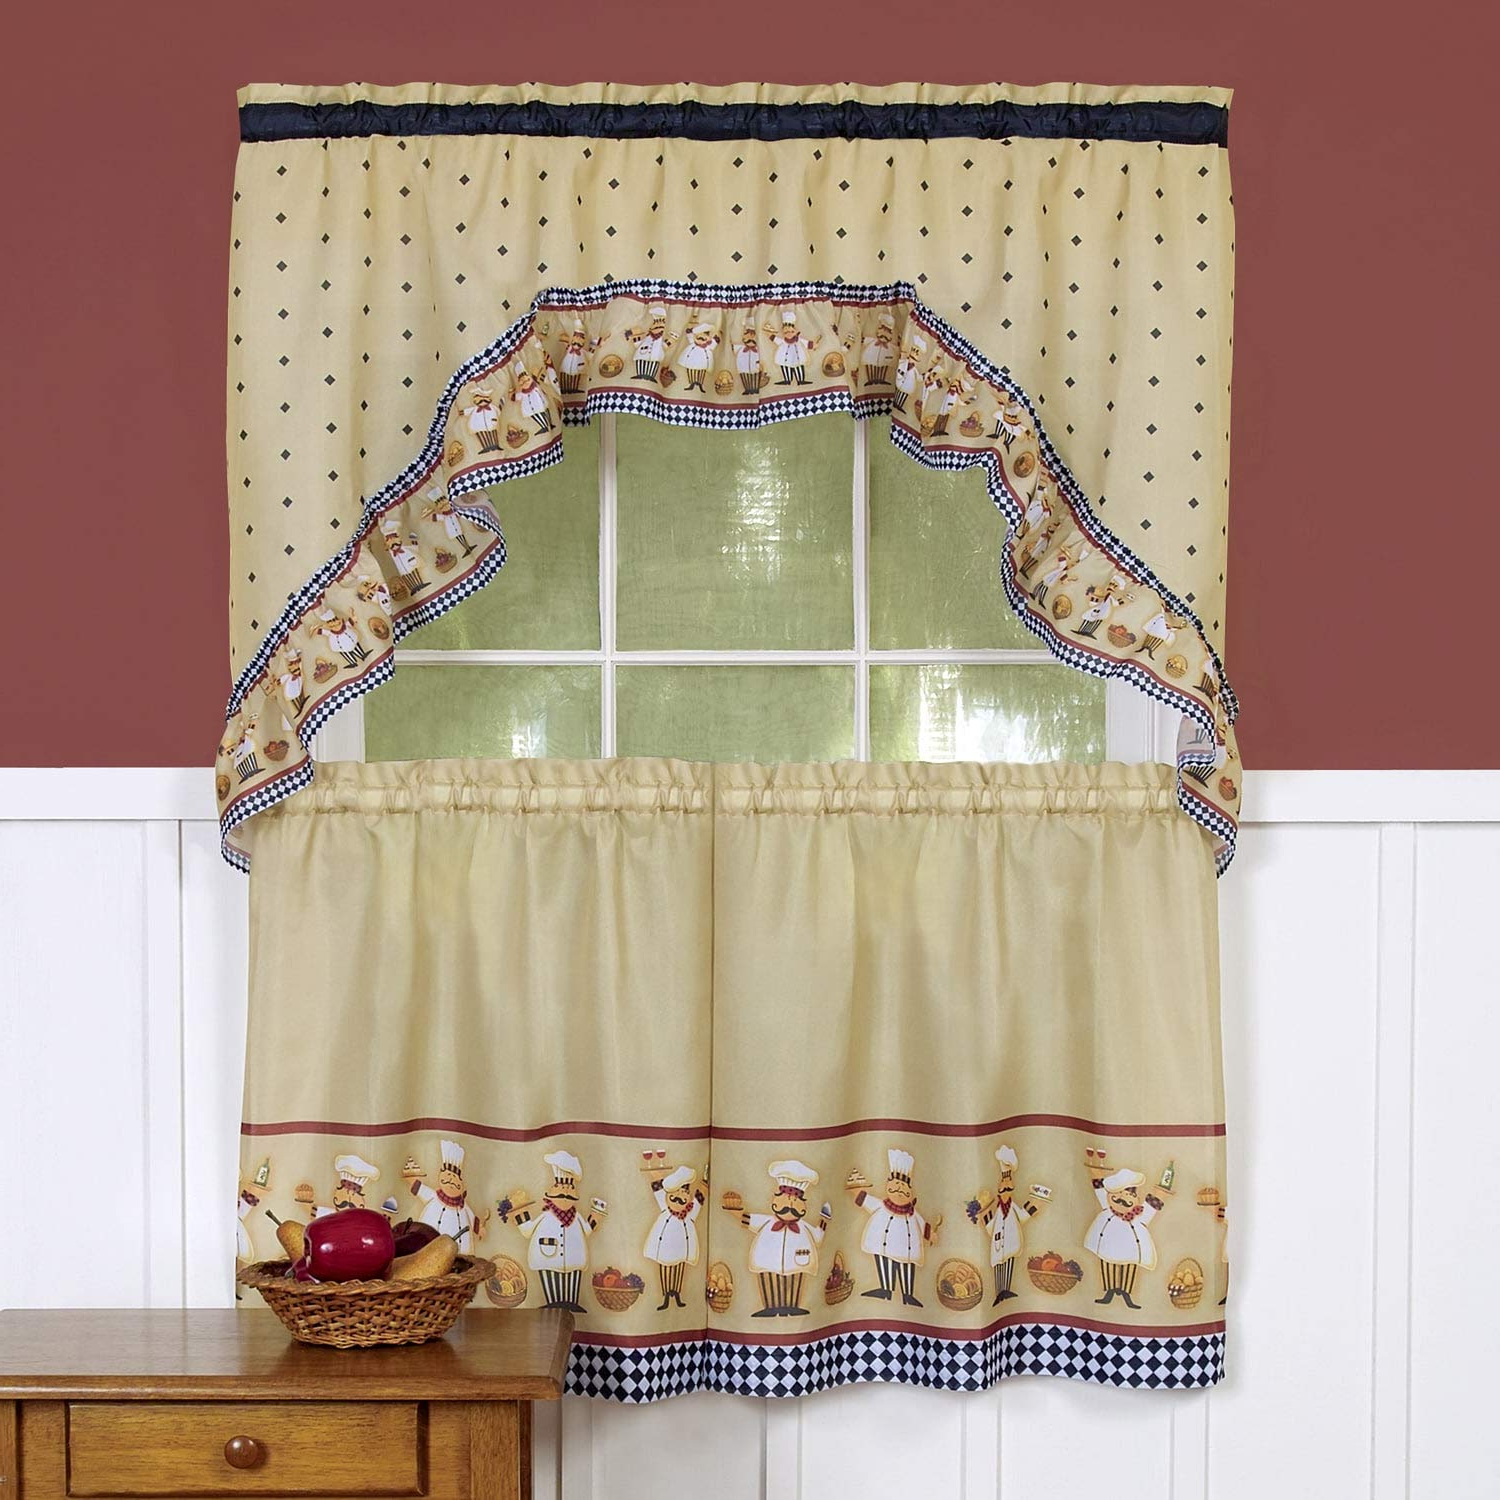 2021 Traditional Two Piece Tailored Tier And Valance Window Curtains Pertaining To Bed Bath N More Traditional Two Piece Tailored Tier And Swag Window Curtains Set With Happy Chef Print – 36 Inch (View 2 of 20)